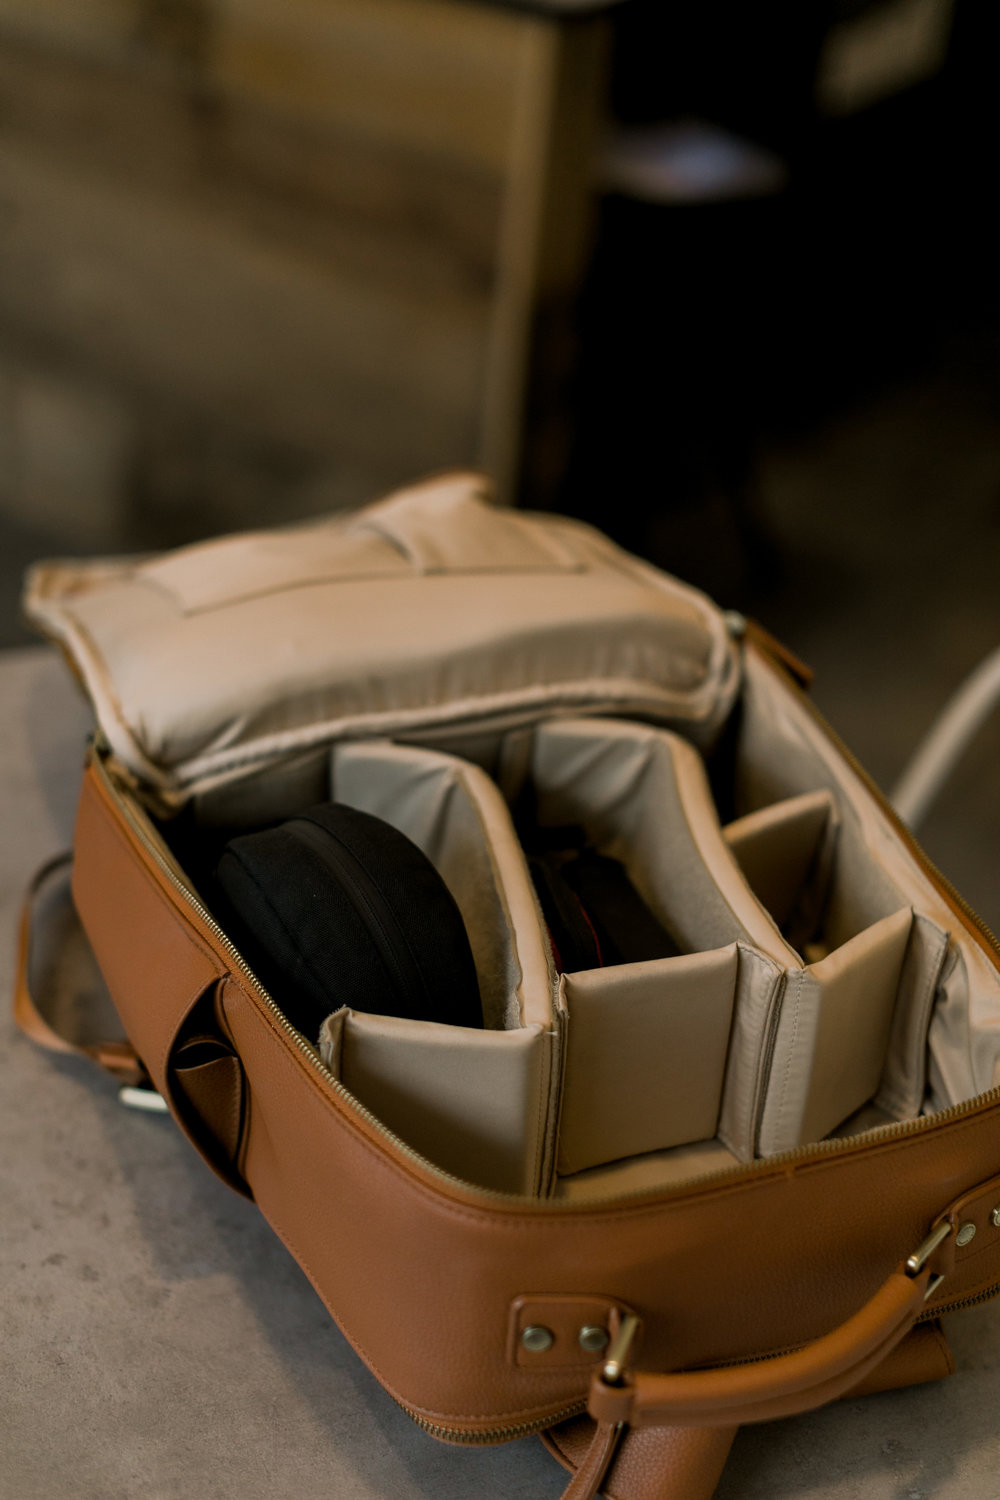 Kamrette Leather Backpack, Photography gear, Professional Wedding Photographer Memphis, Lititz PA, Slate Coffee Shop